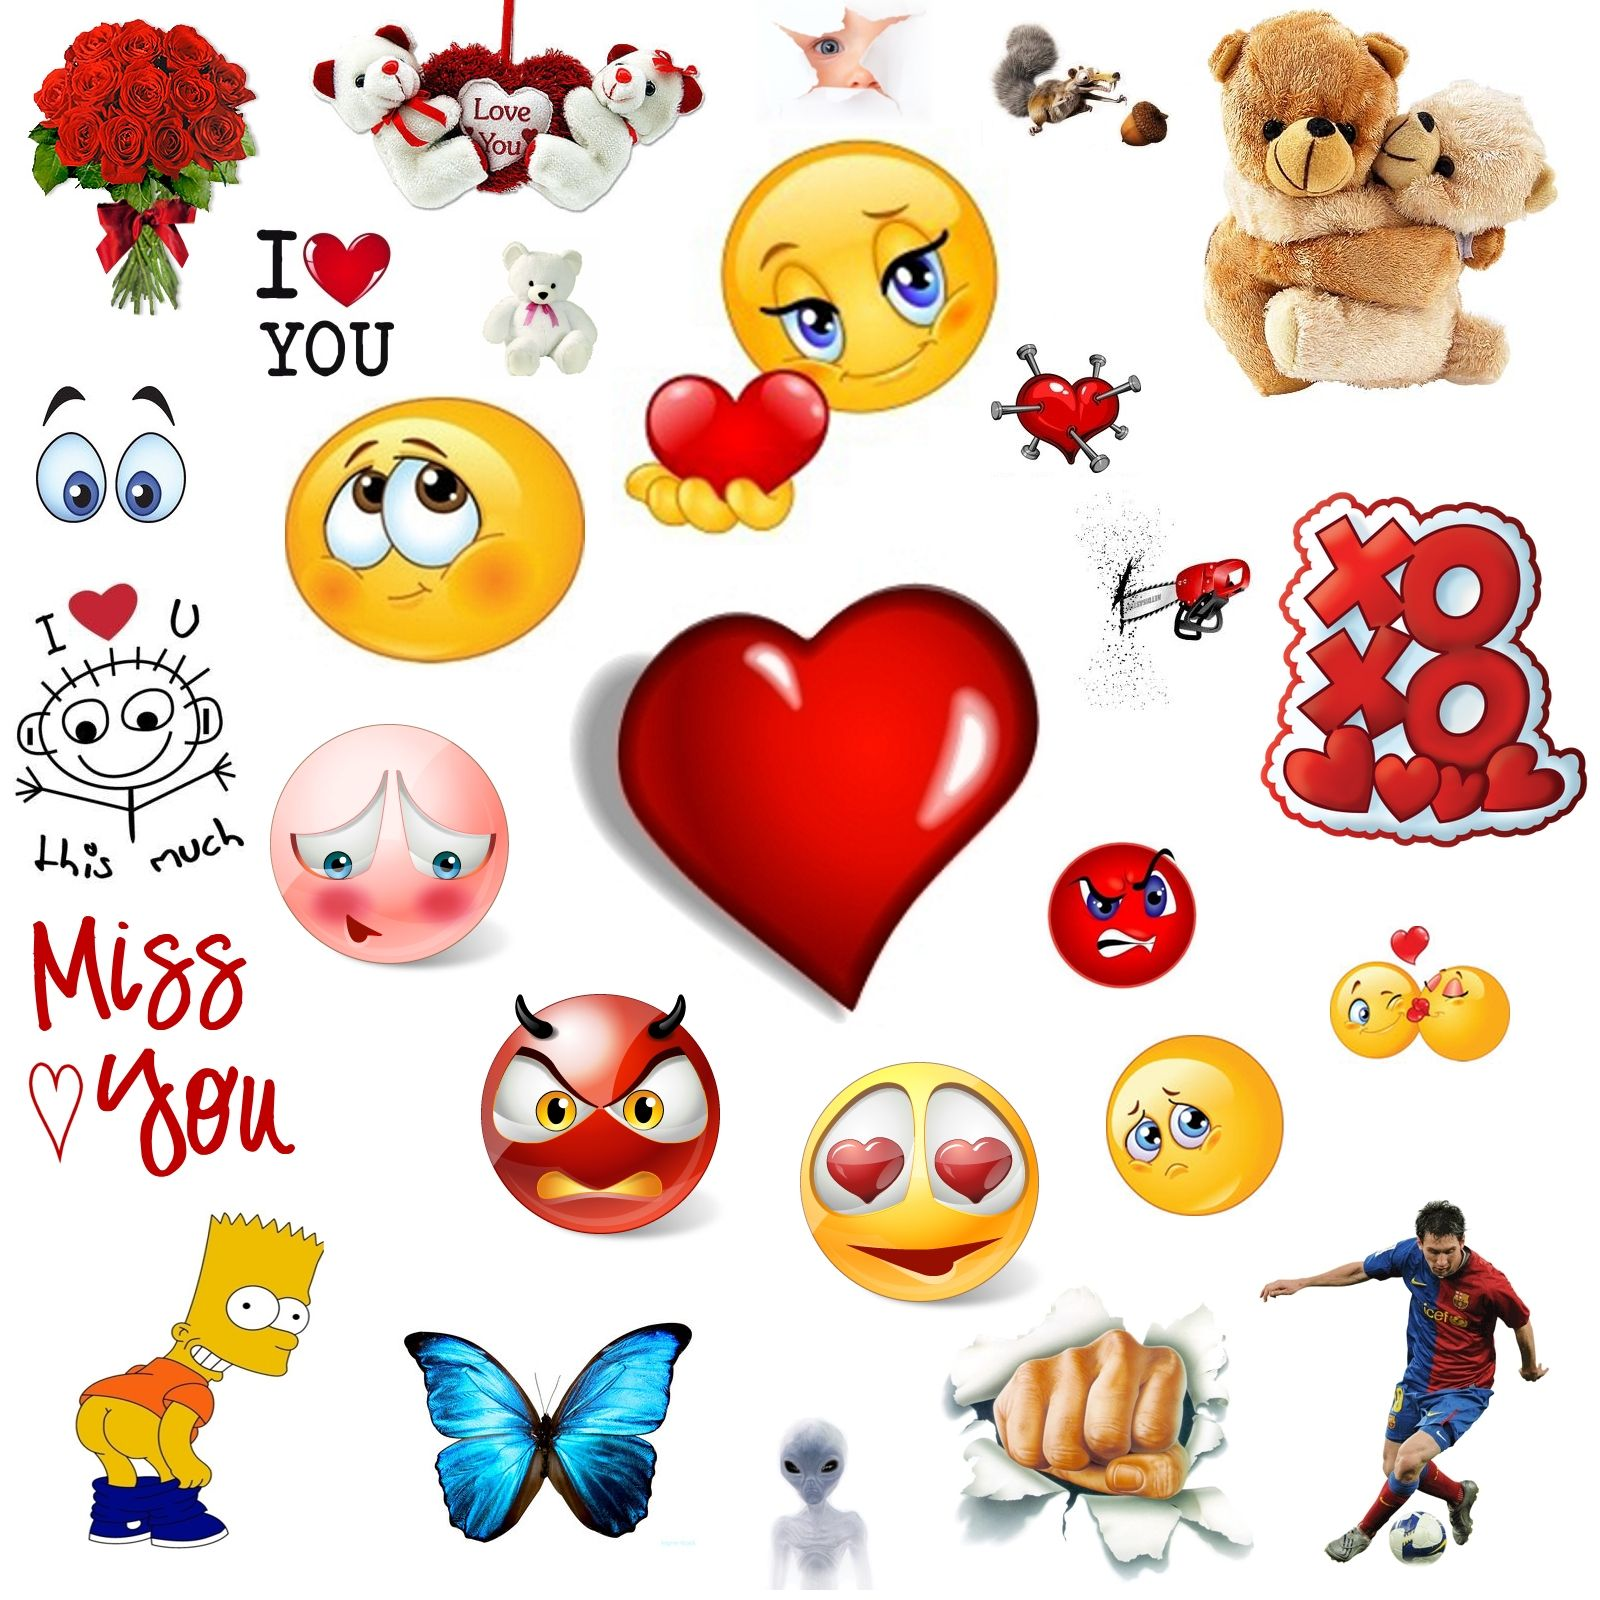 Now You Can Choose From Hundreds Of Amazing New Emoticons For